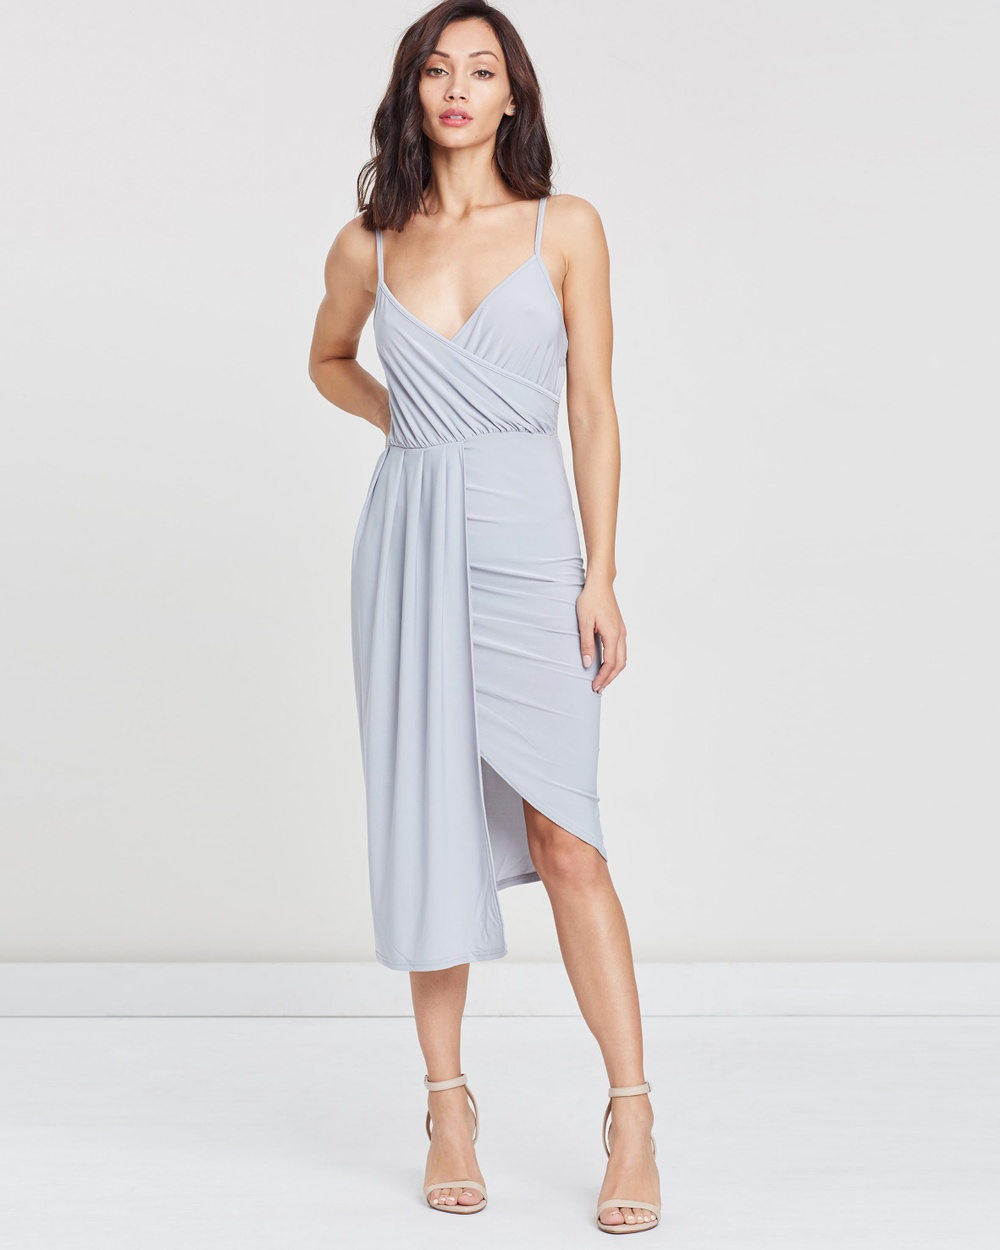 Missguided Slinky Strappy Midi Dress Dresses Lilac Slinky Strappy Midi Dress